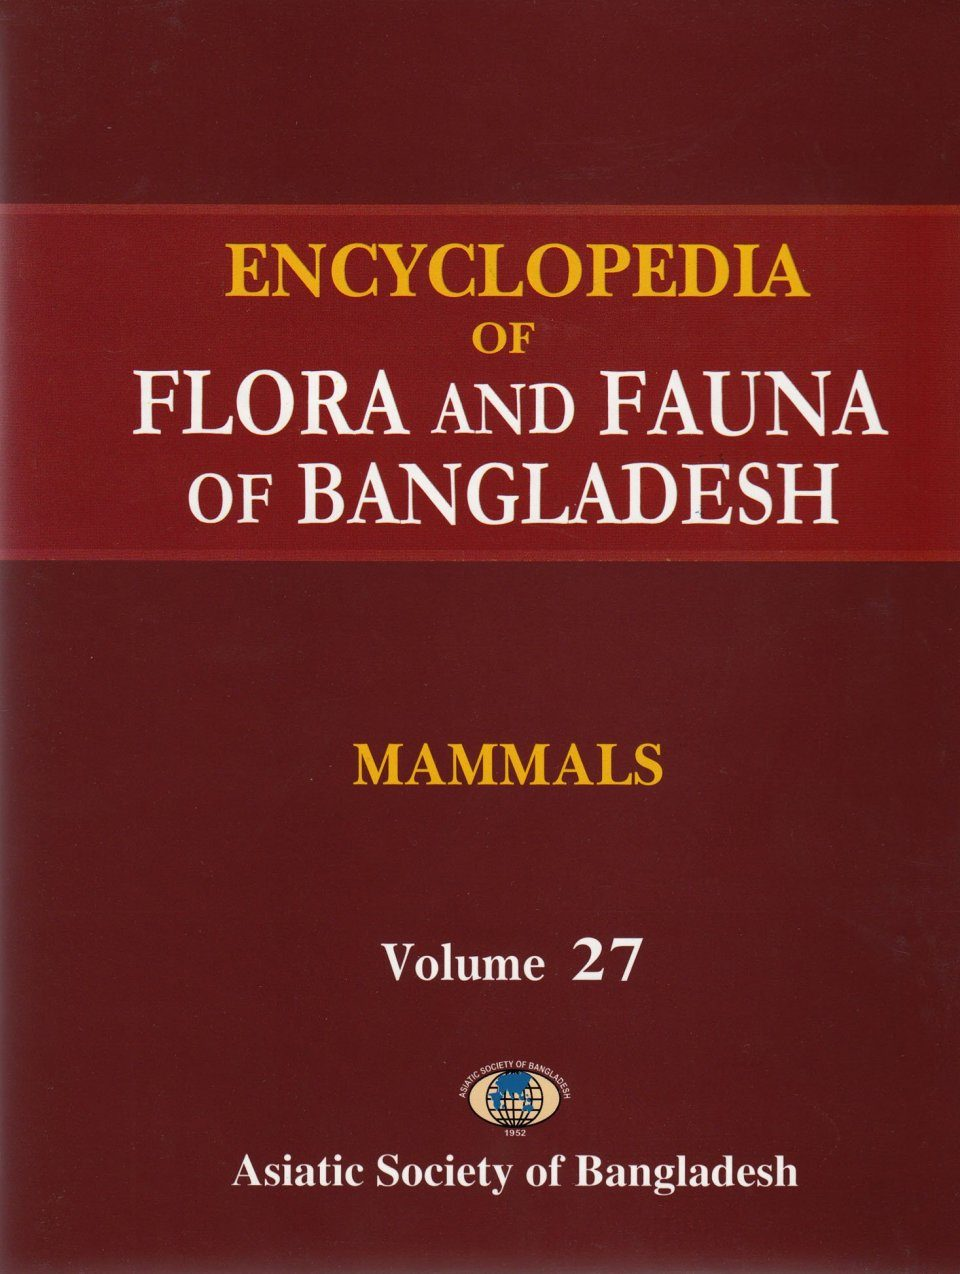 Encyclopedia of Flora and Fauna of Bangladesh, Volume 27: Mammals